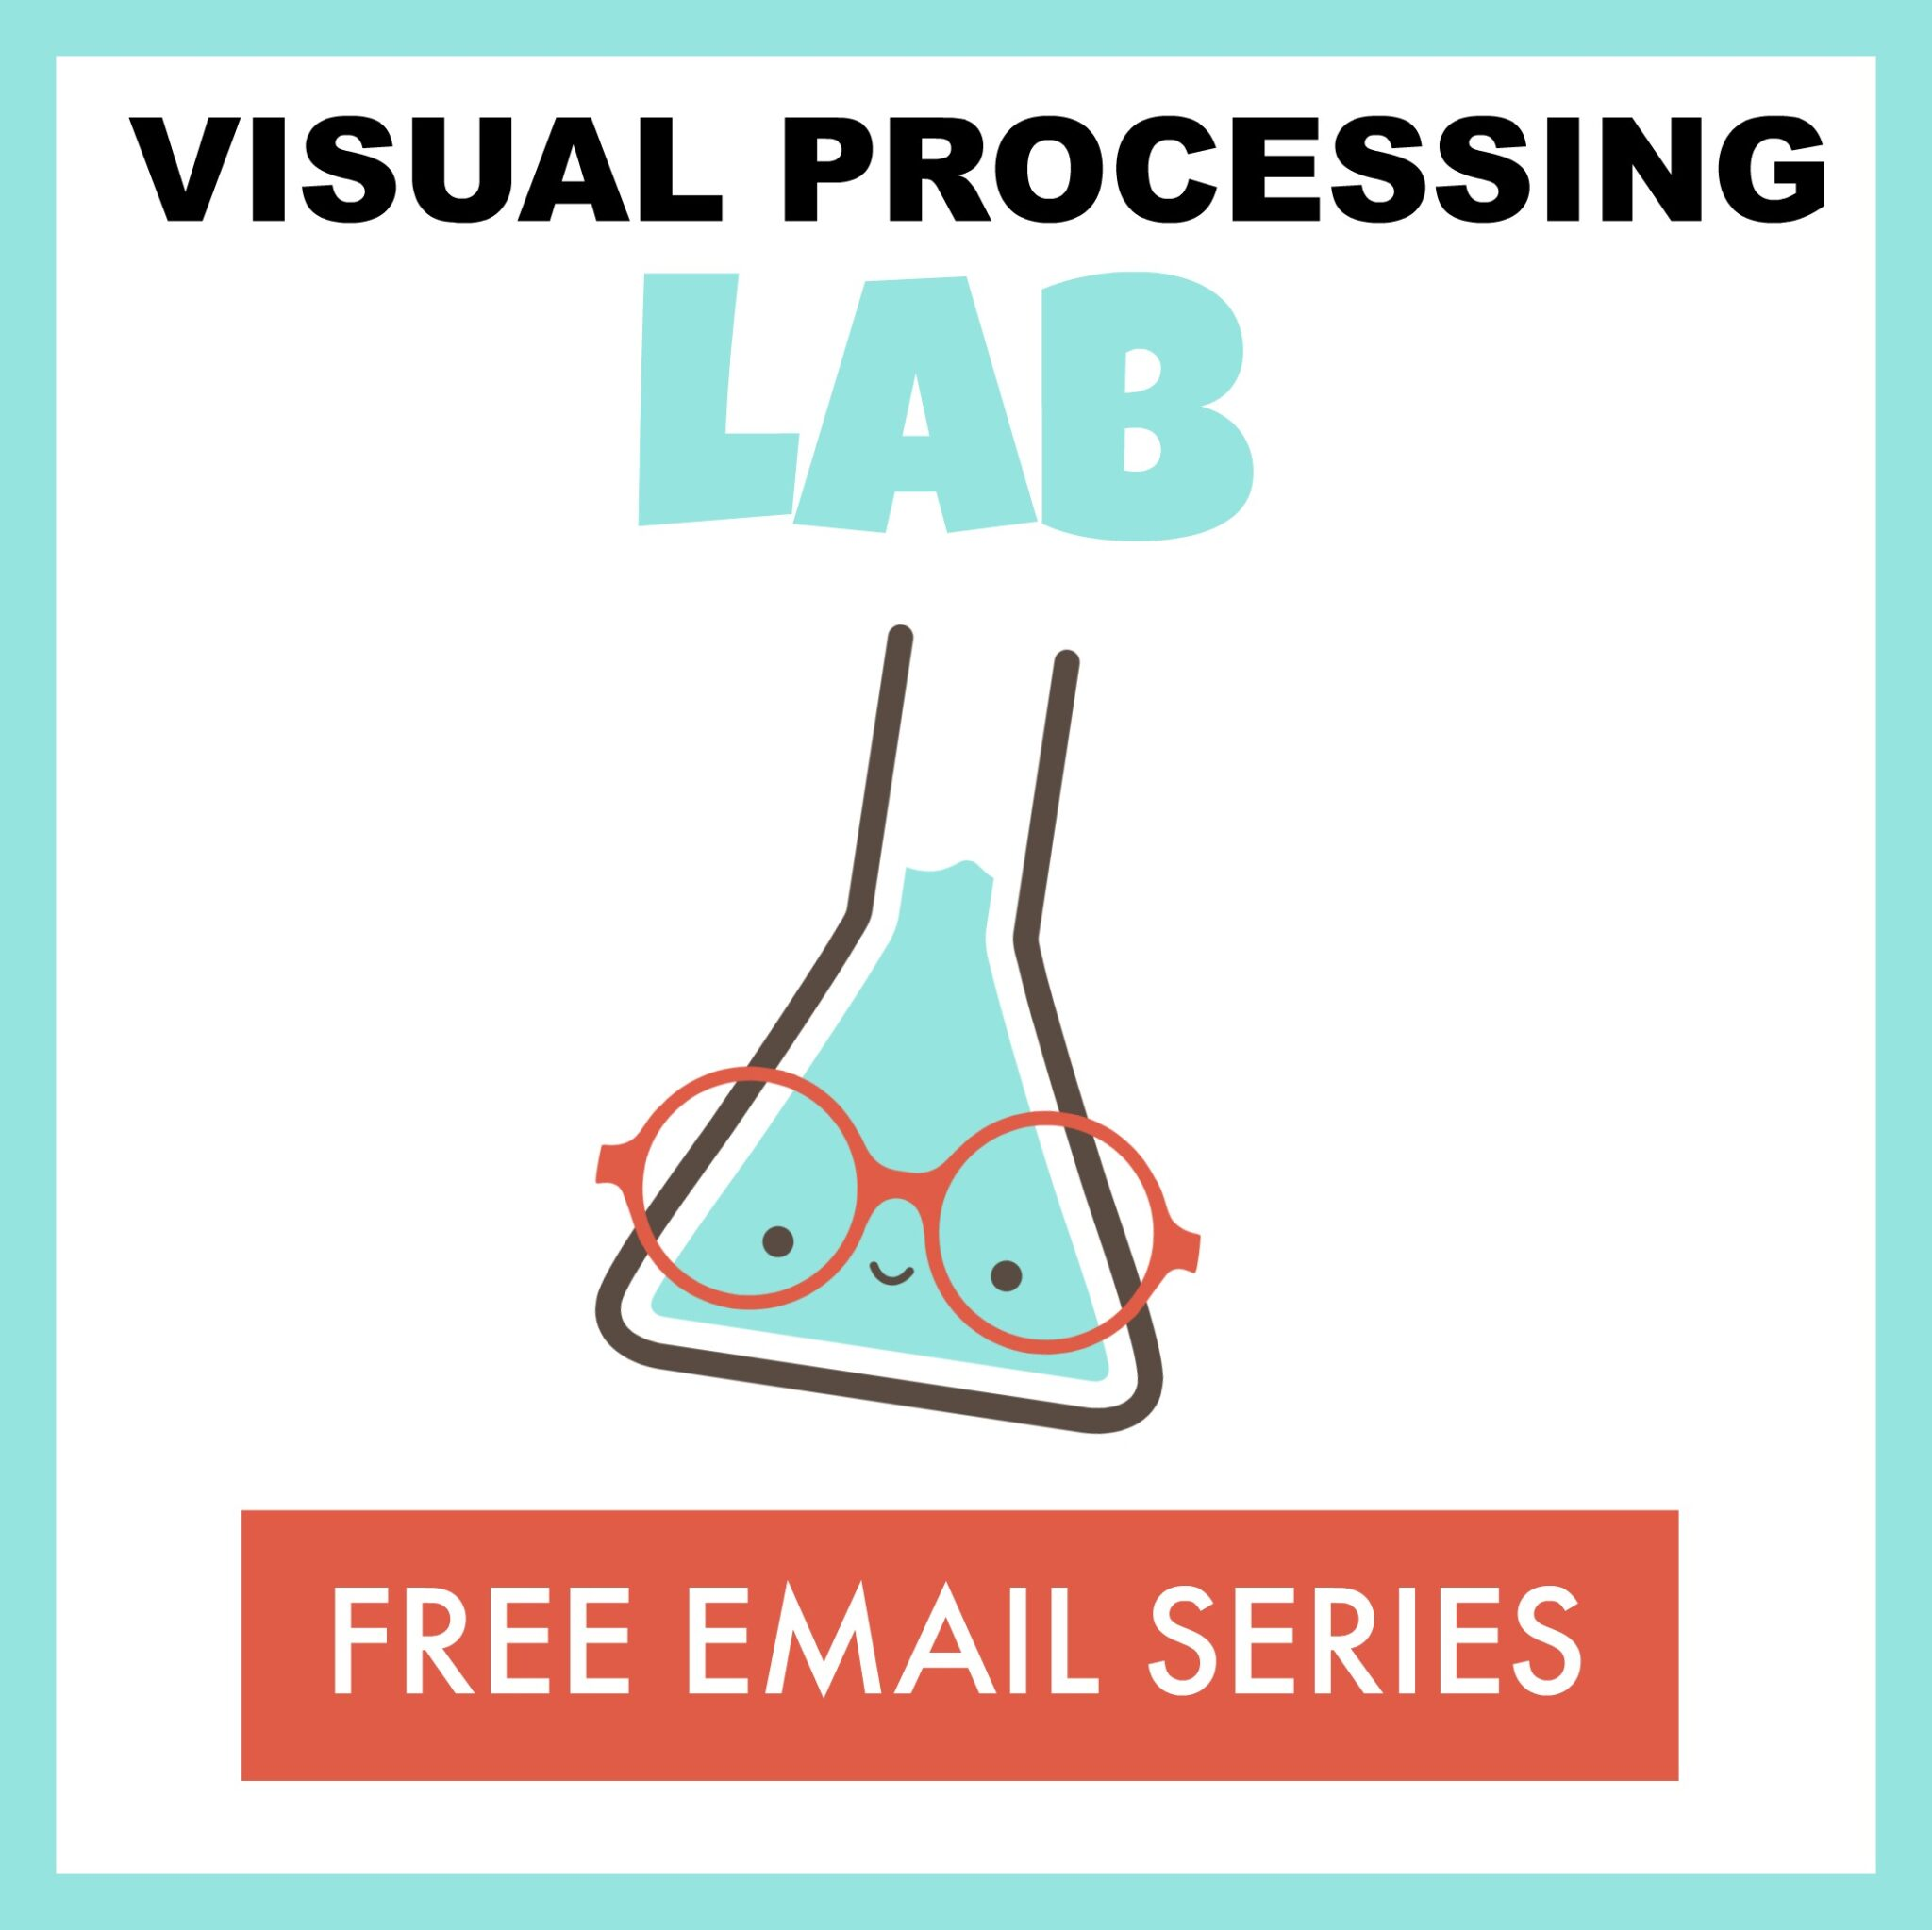 Free visual processing email course